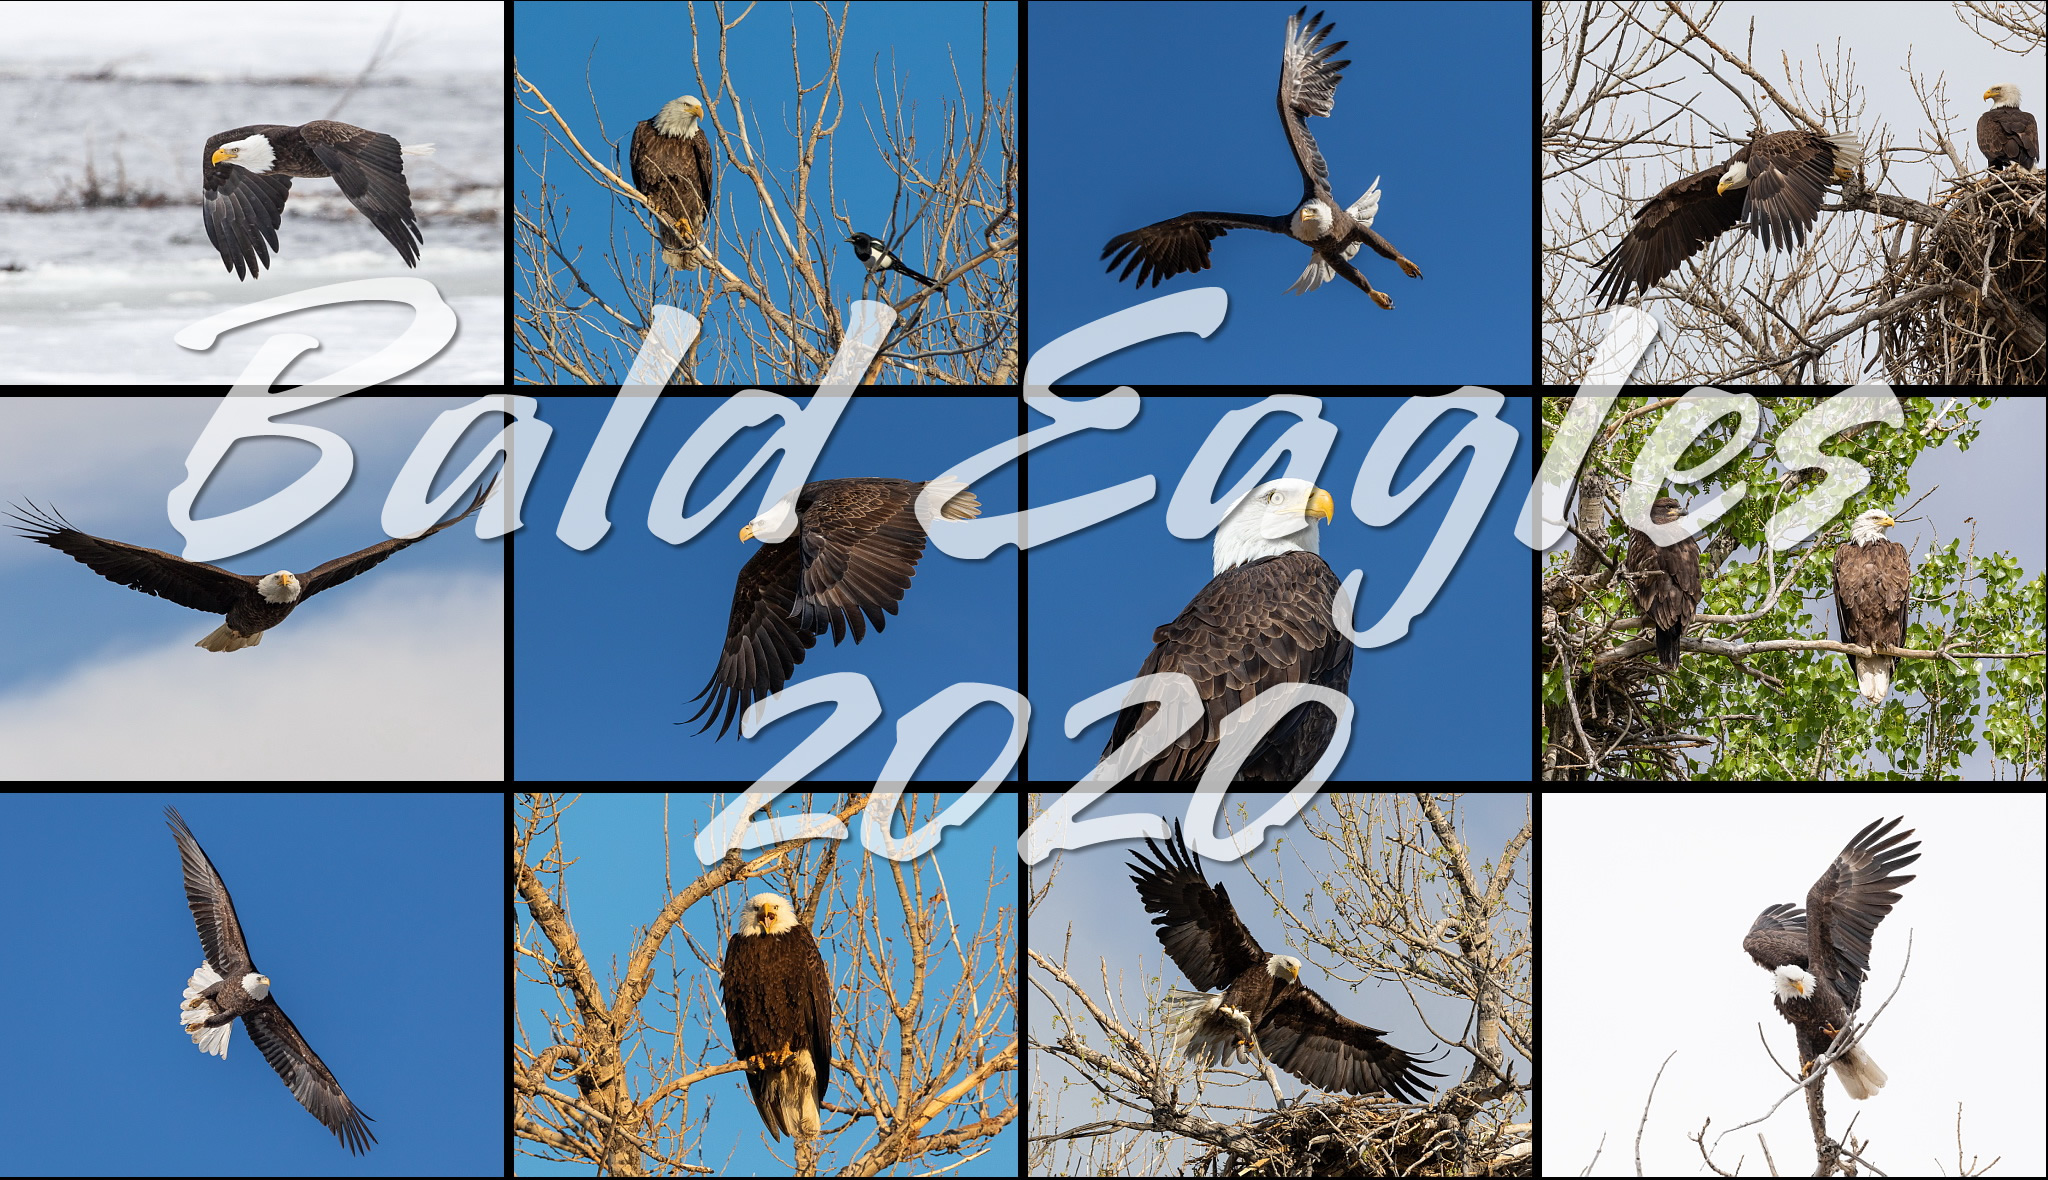 Bald Eagles 2020 Calendar